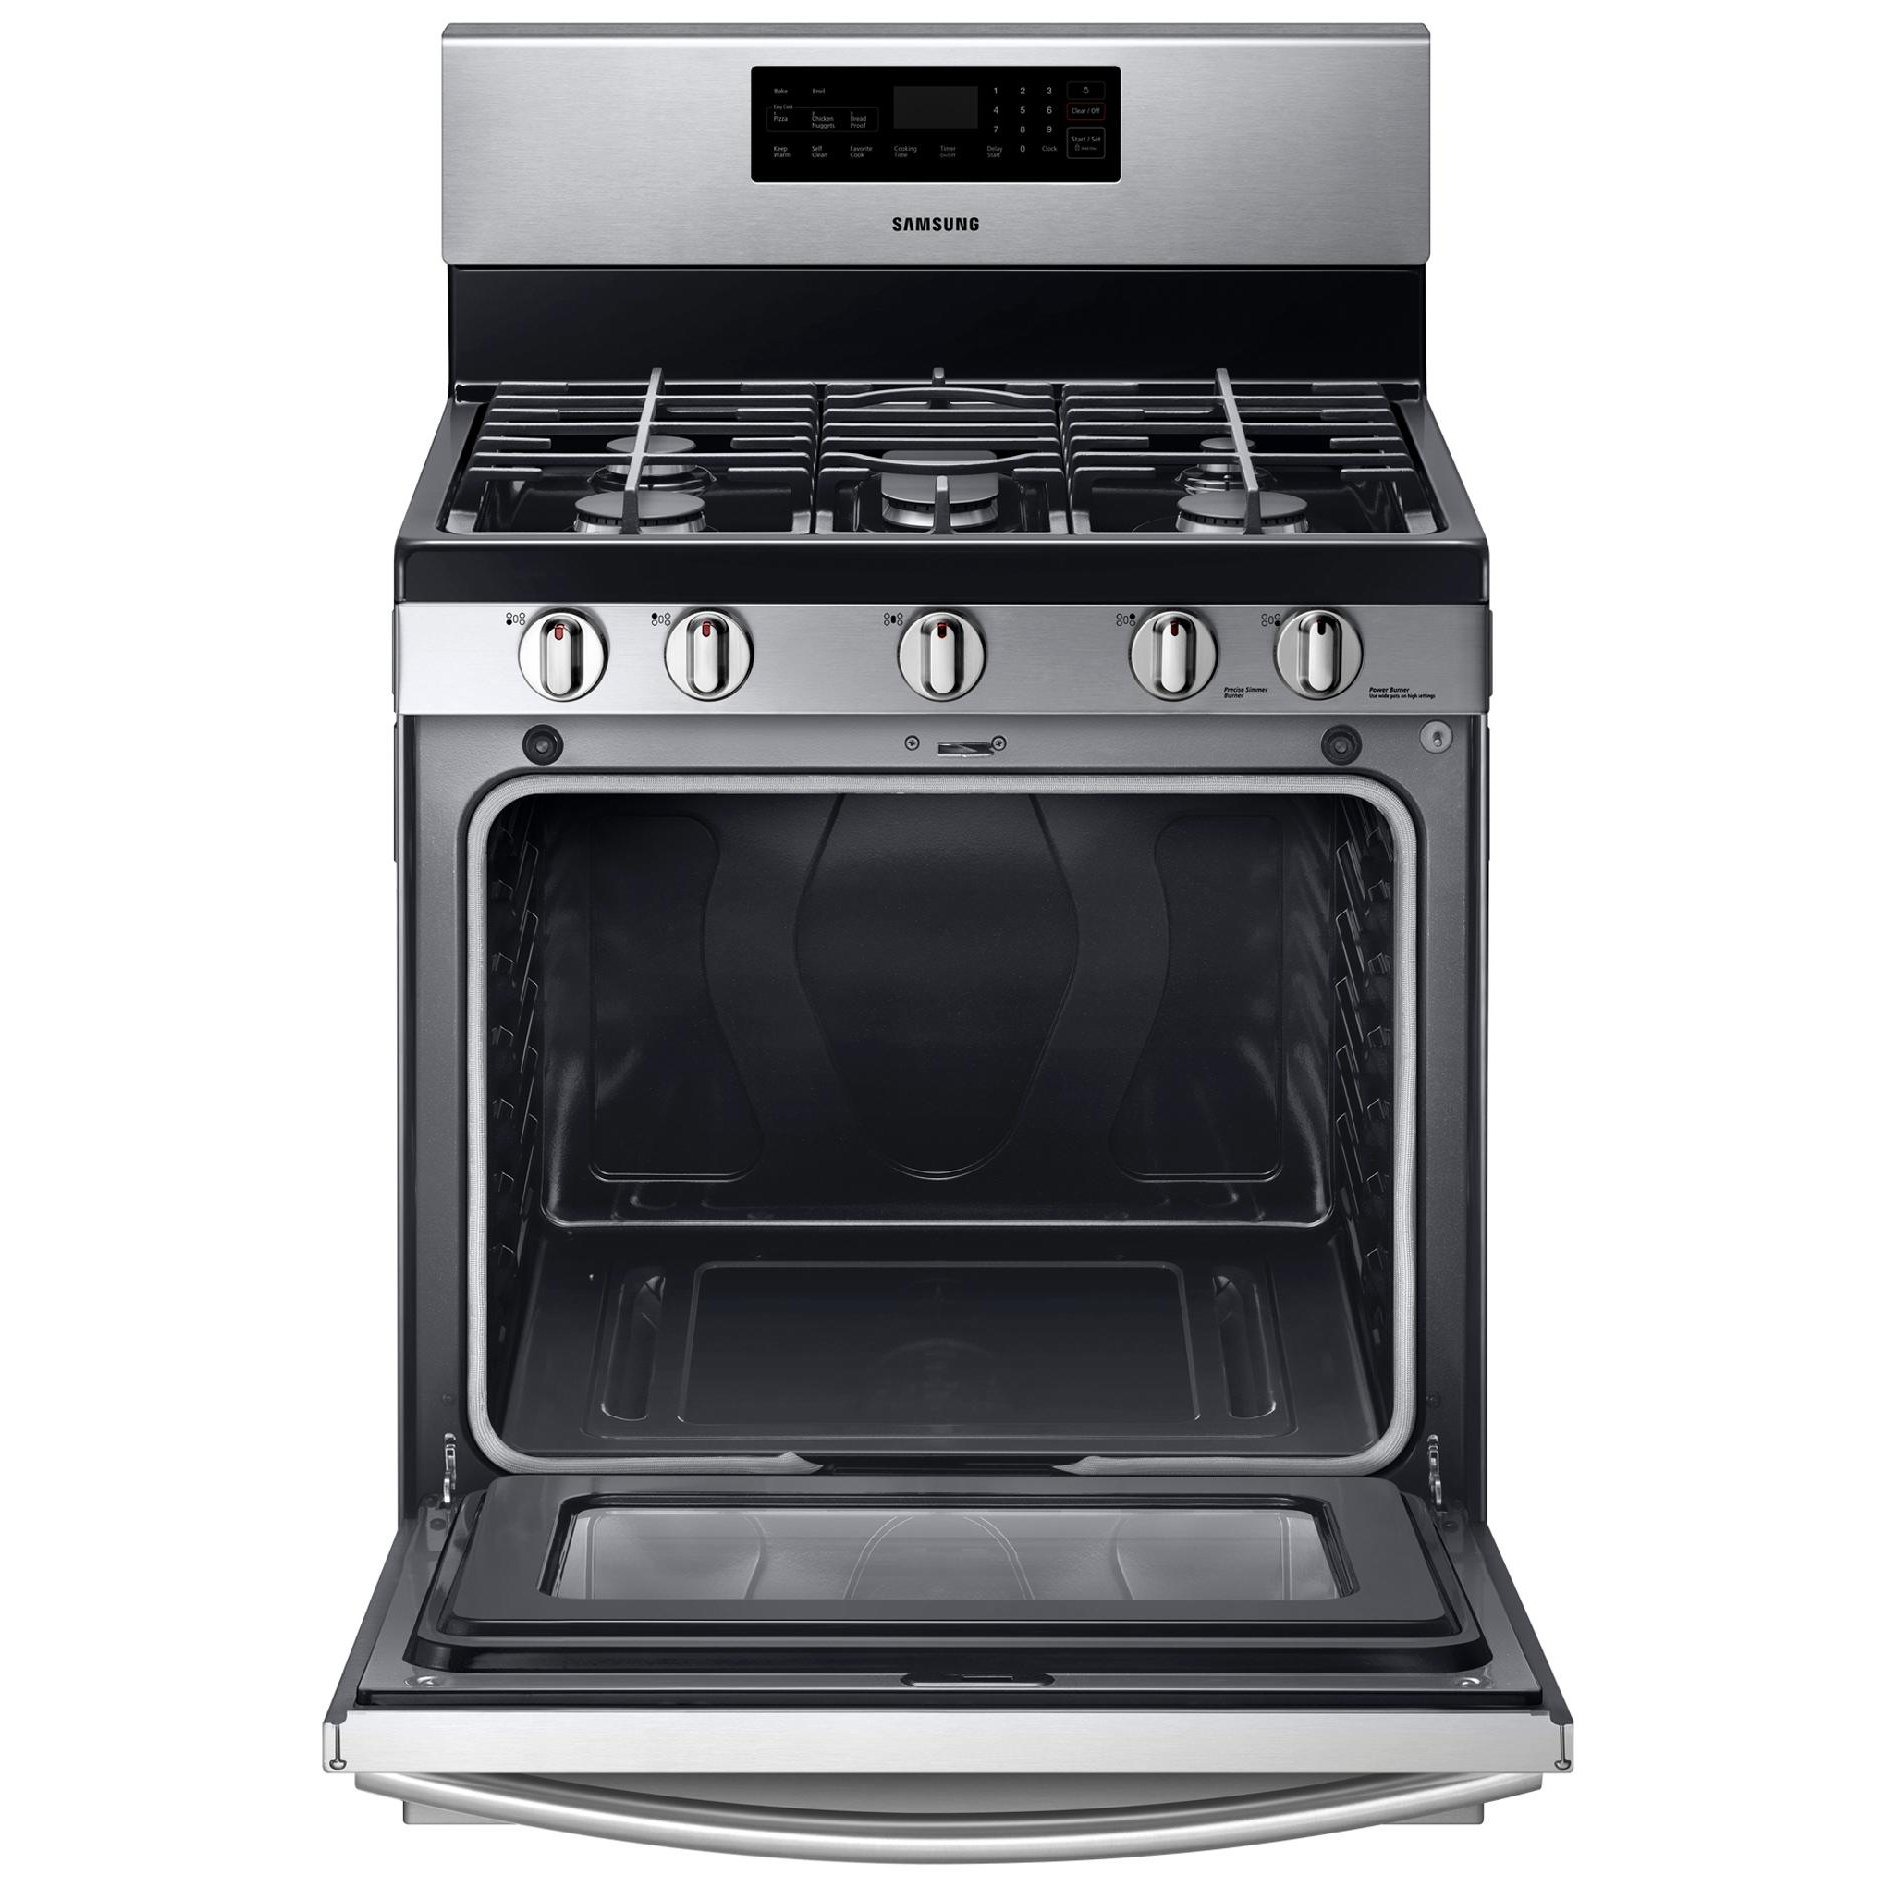 Samsung NX58F5500SS 5.8 cu. ft. Gas Range w/ Griddle - Stainless Steel